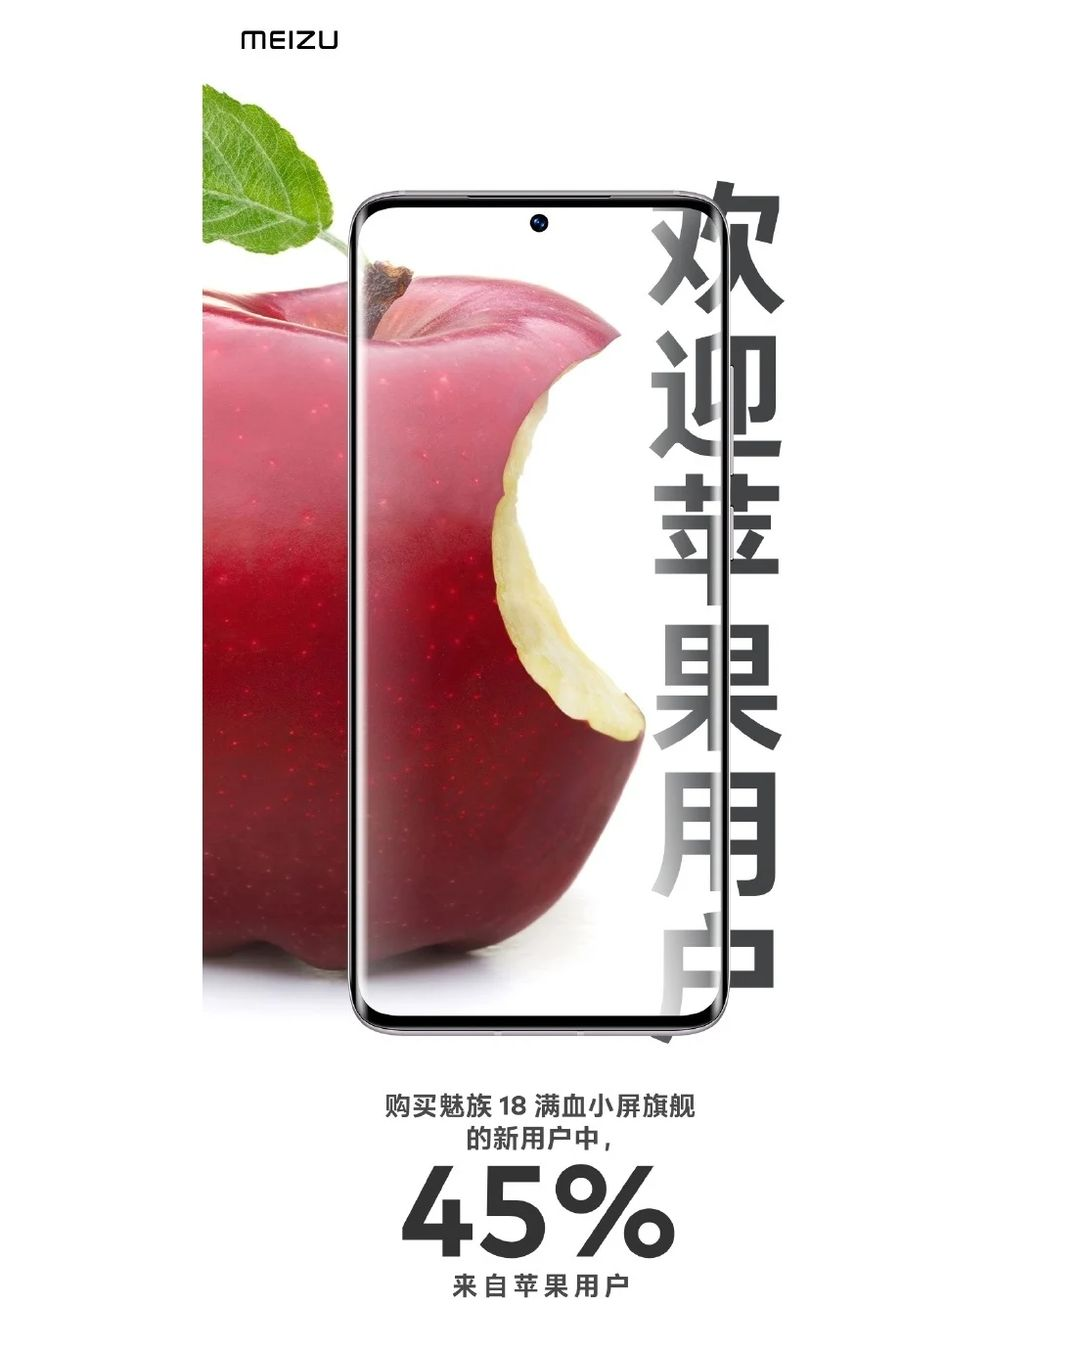 Meizu claims 45% of its new customers are Apple iPhone users